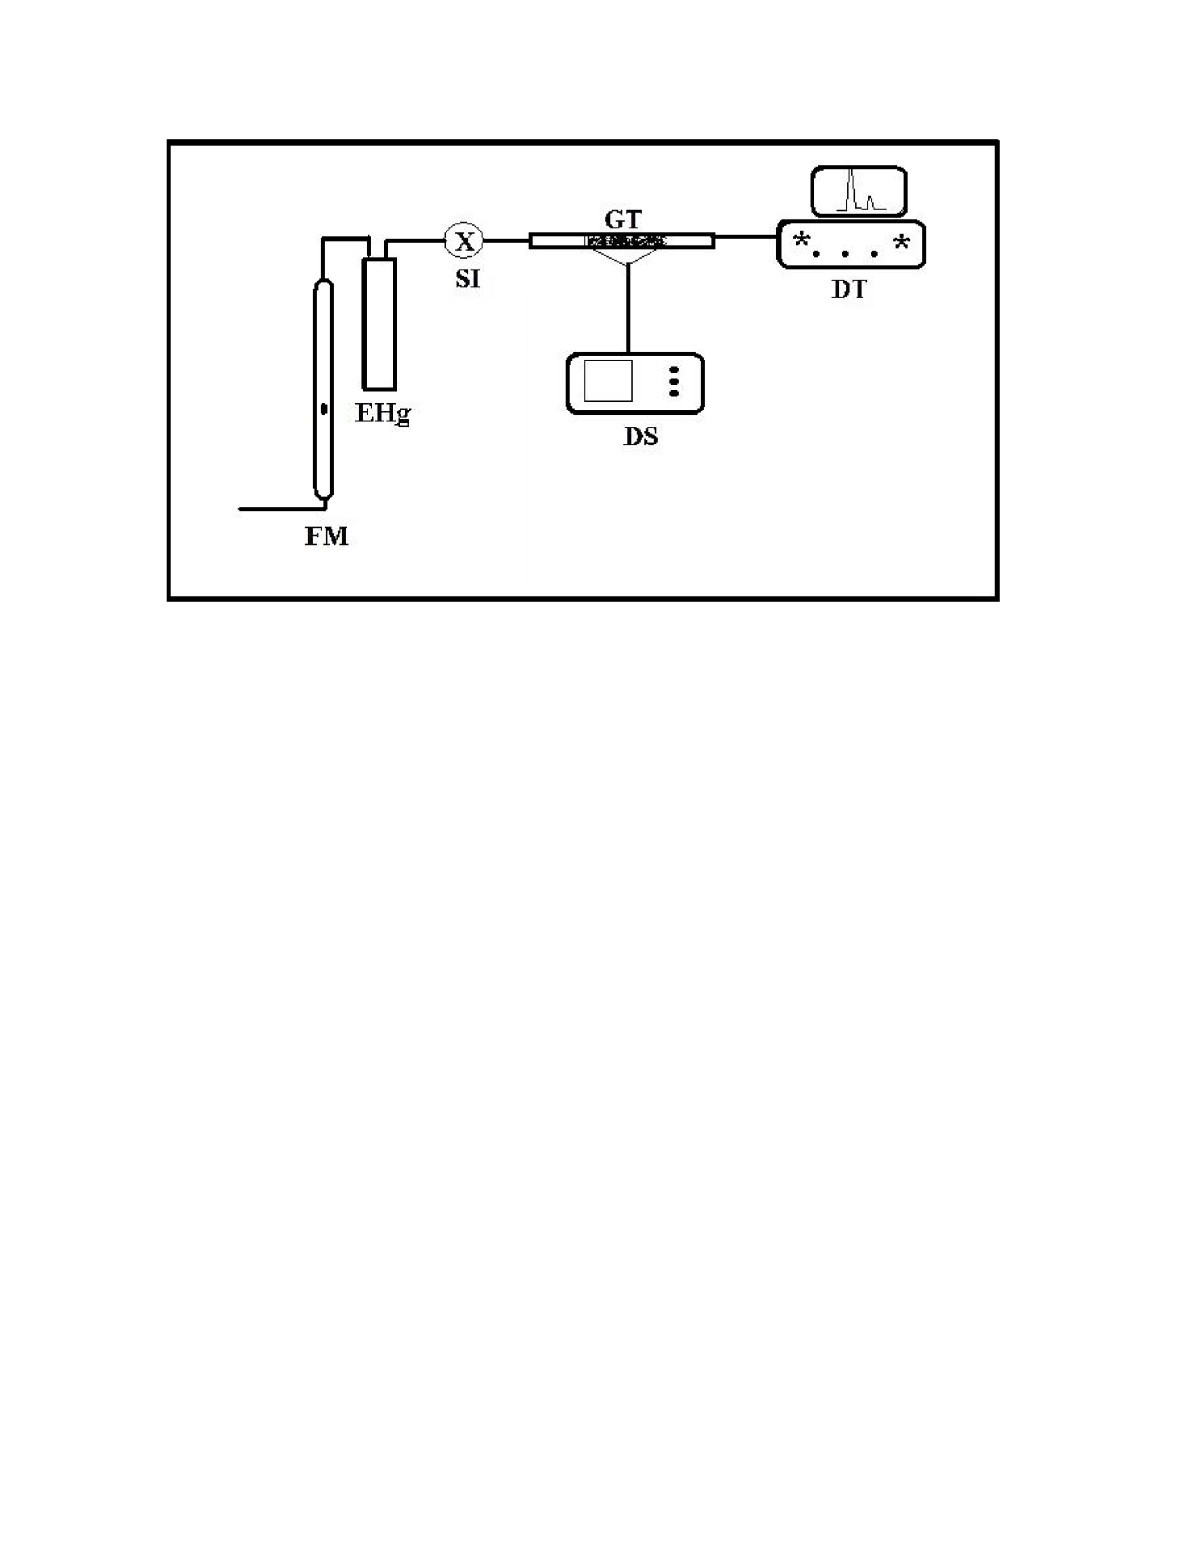 Removal Of Traces Mercury From A Carrier Gas For Analytical Grado Gold Wiring Diagram Figure 1 Schematic